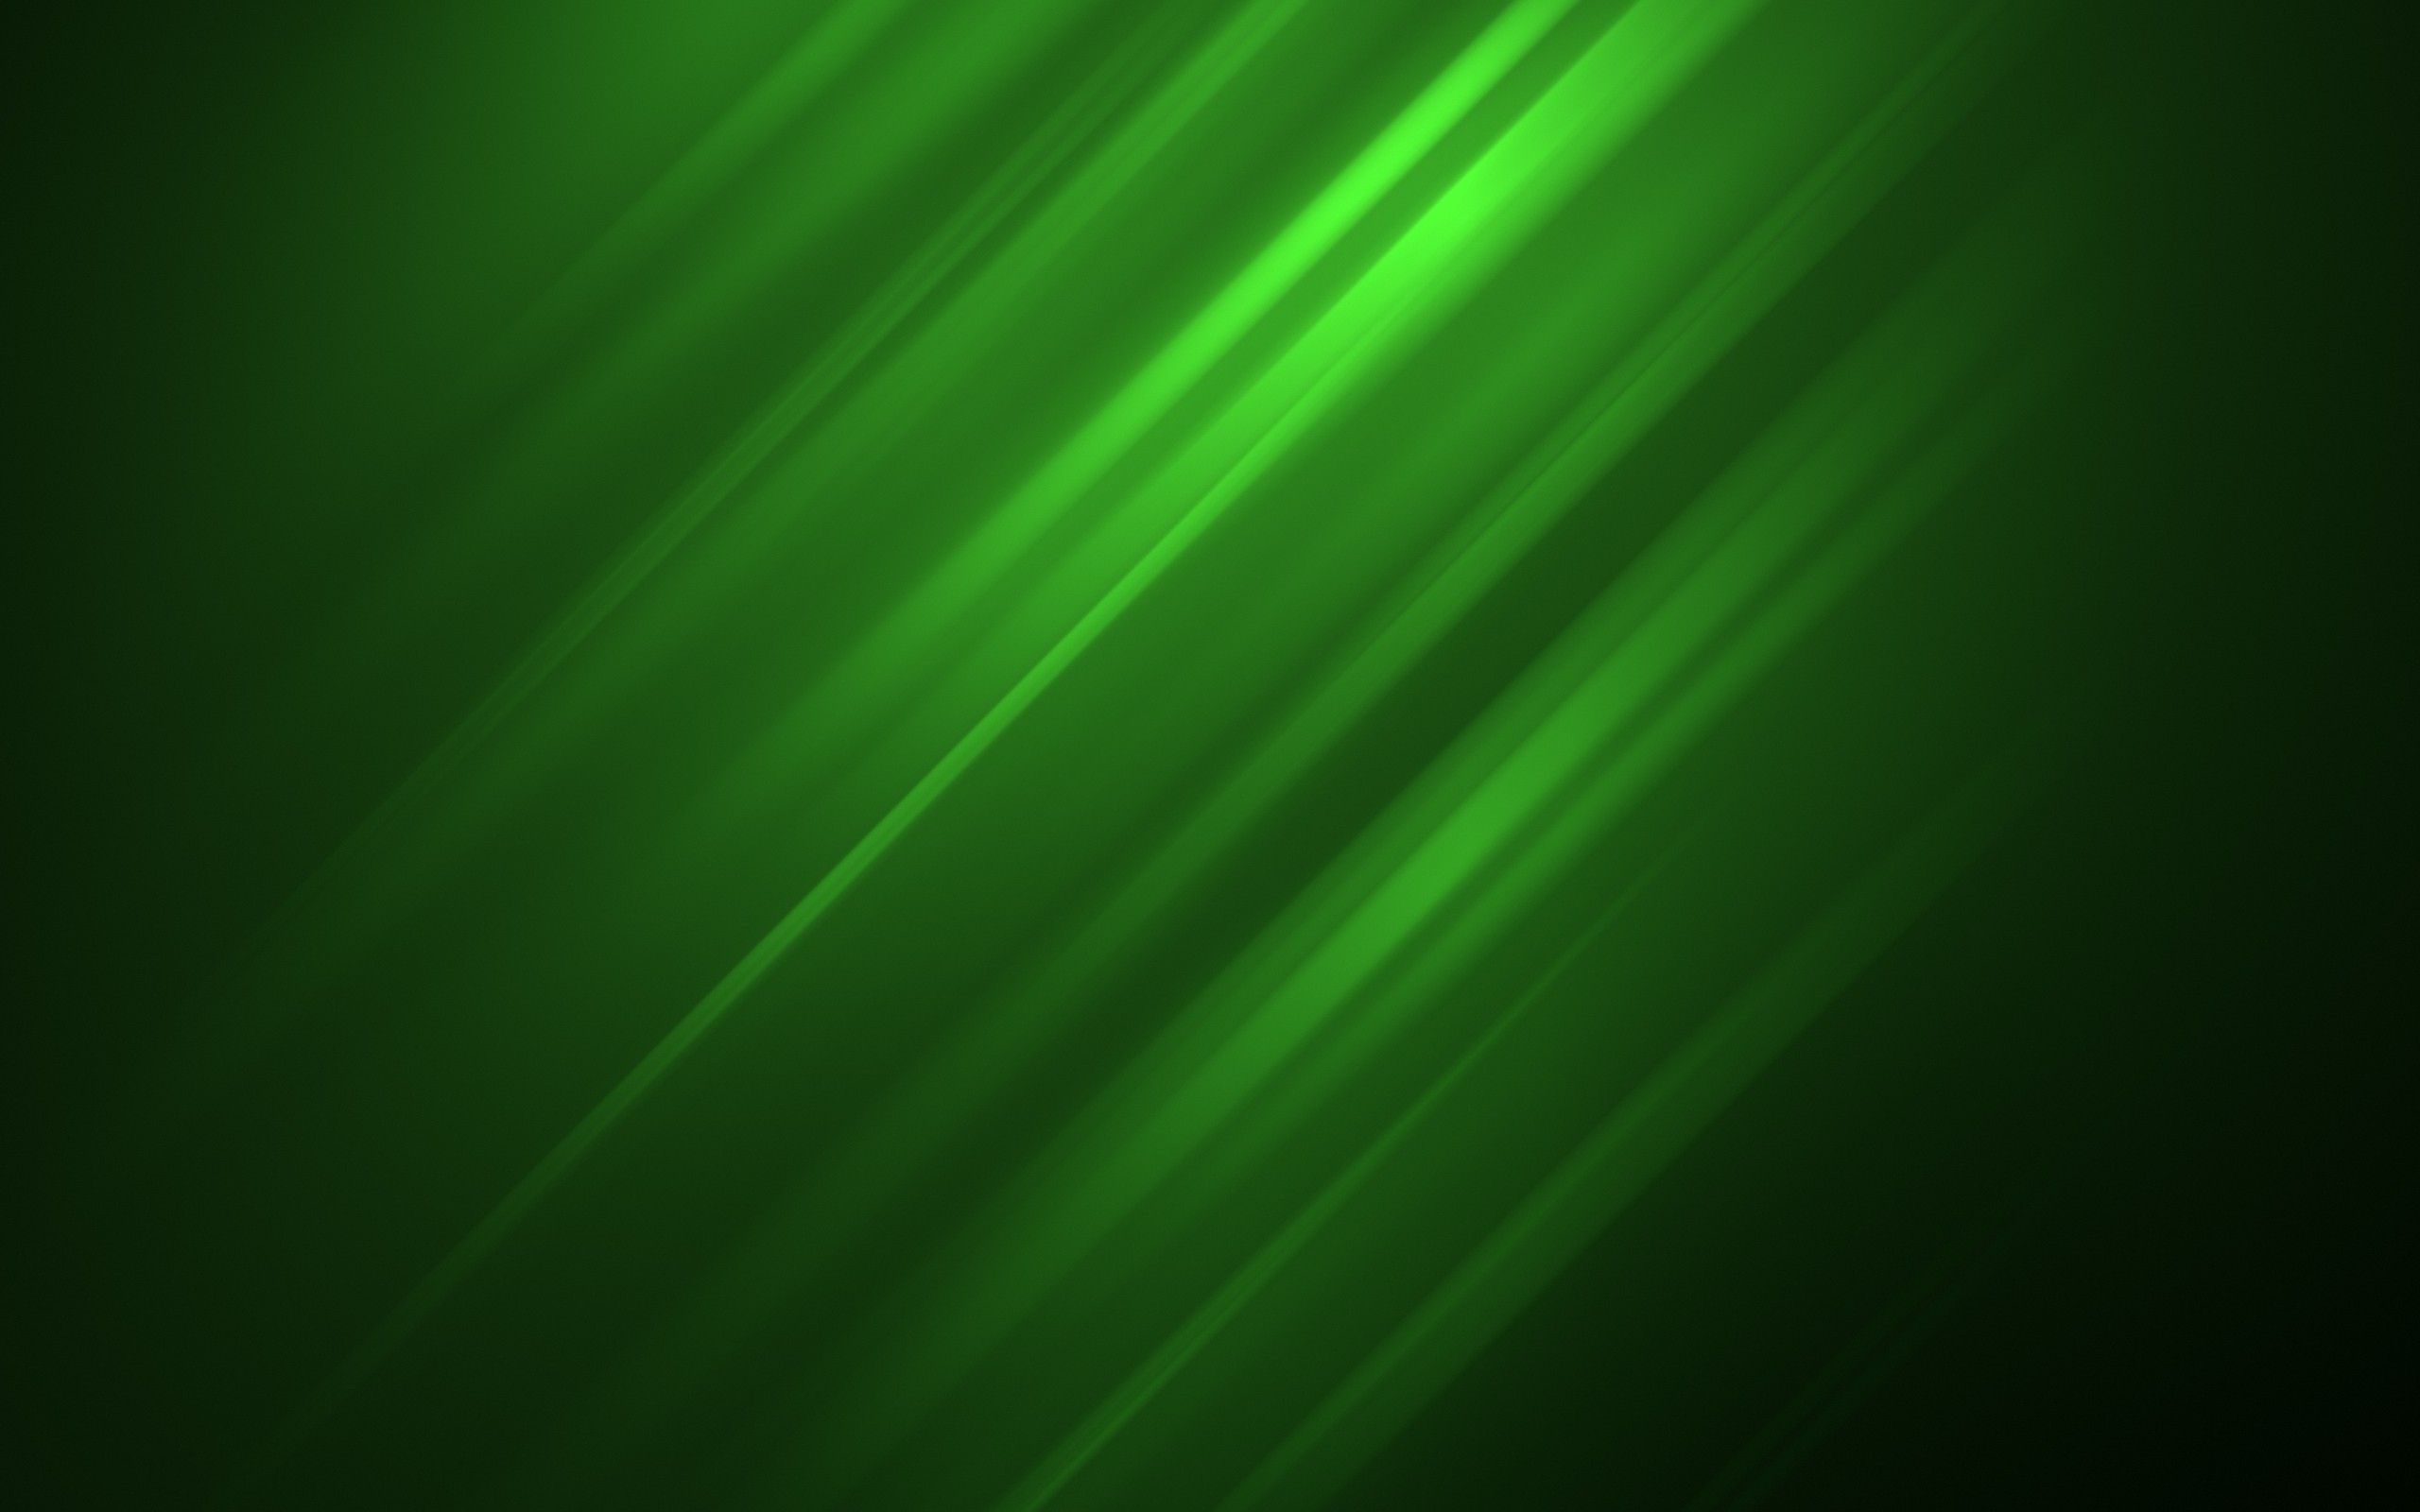 3d Name Live Wallpaper Download Green Background 21871 2560x1600 Px Hdwallsource Com